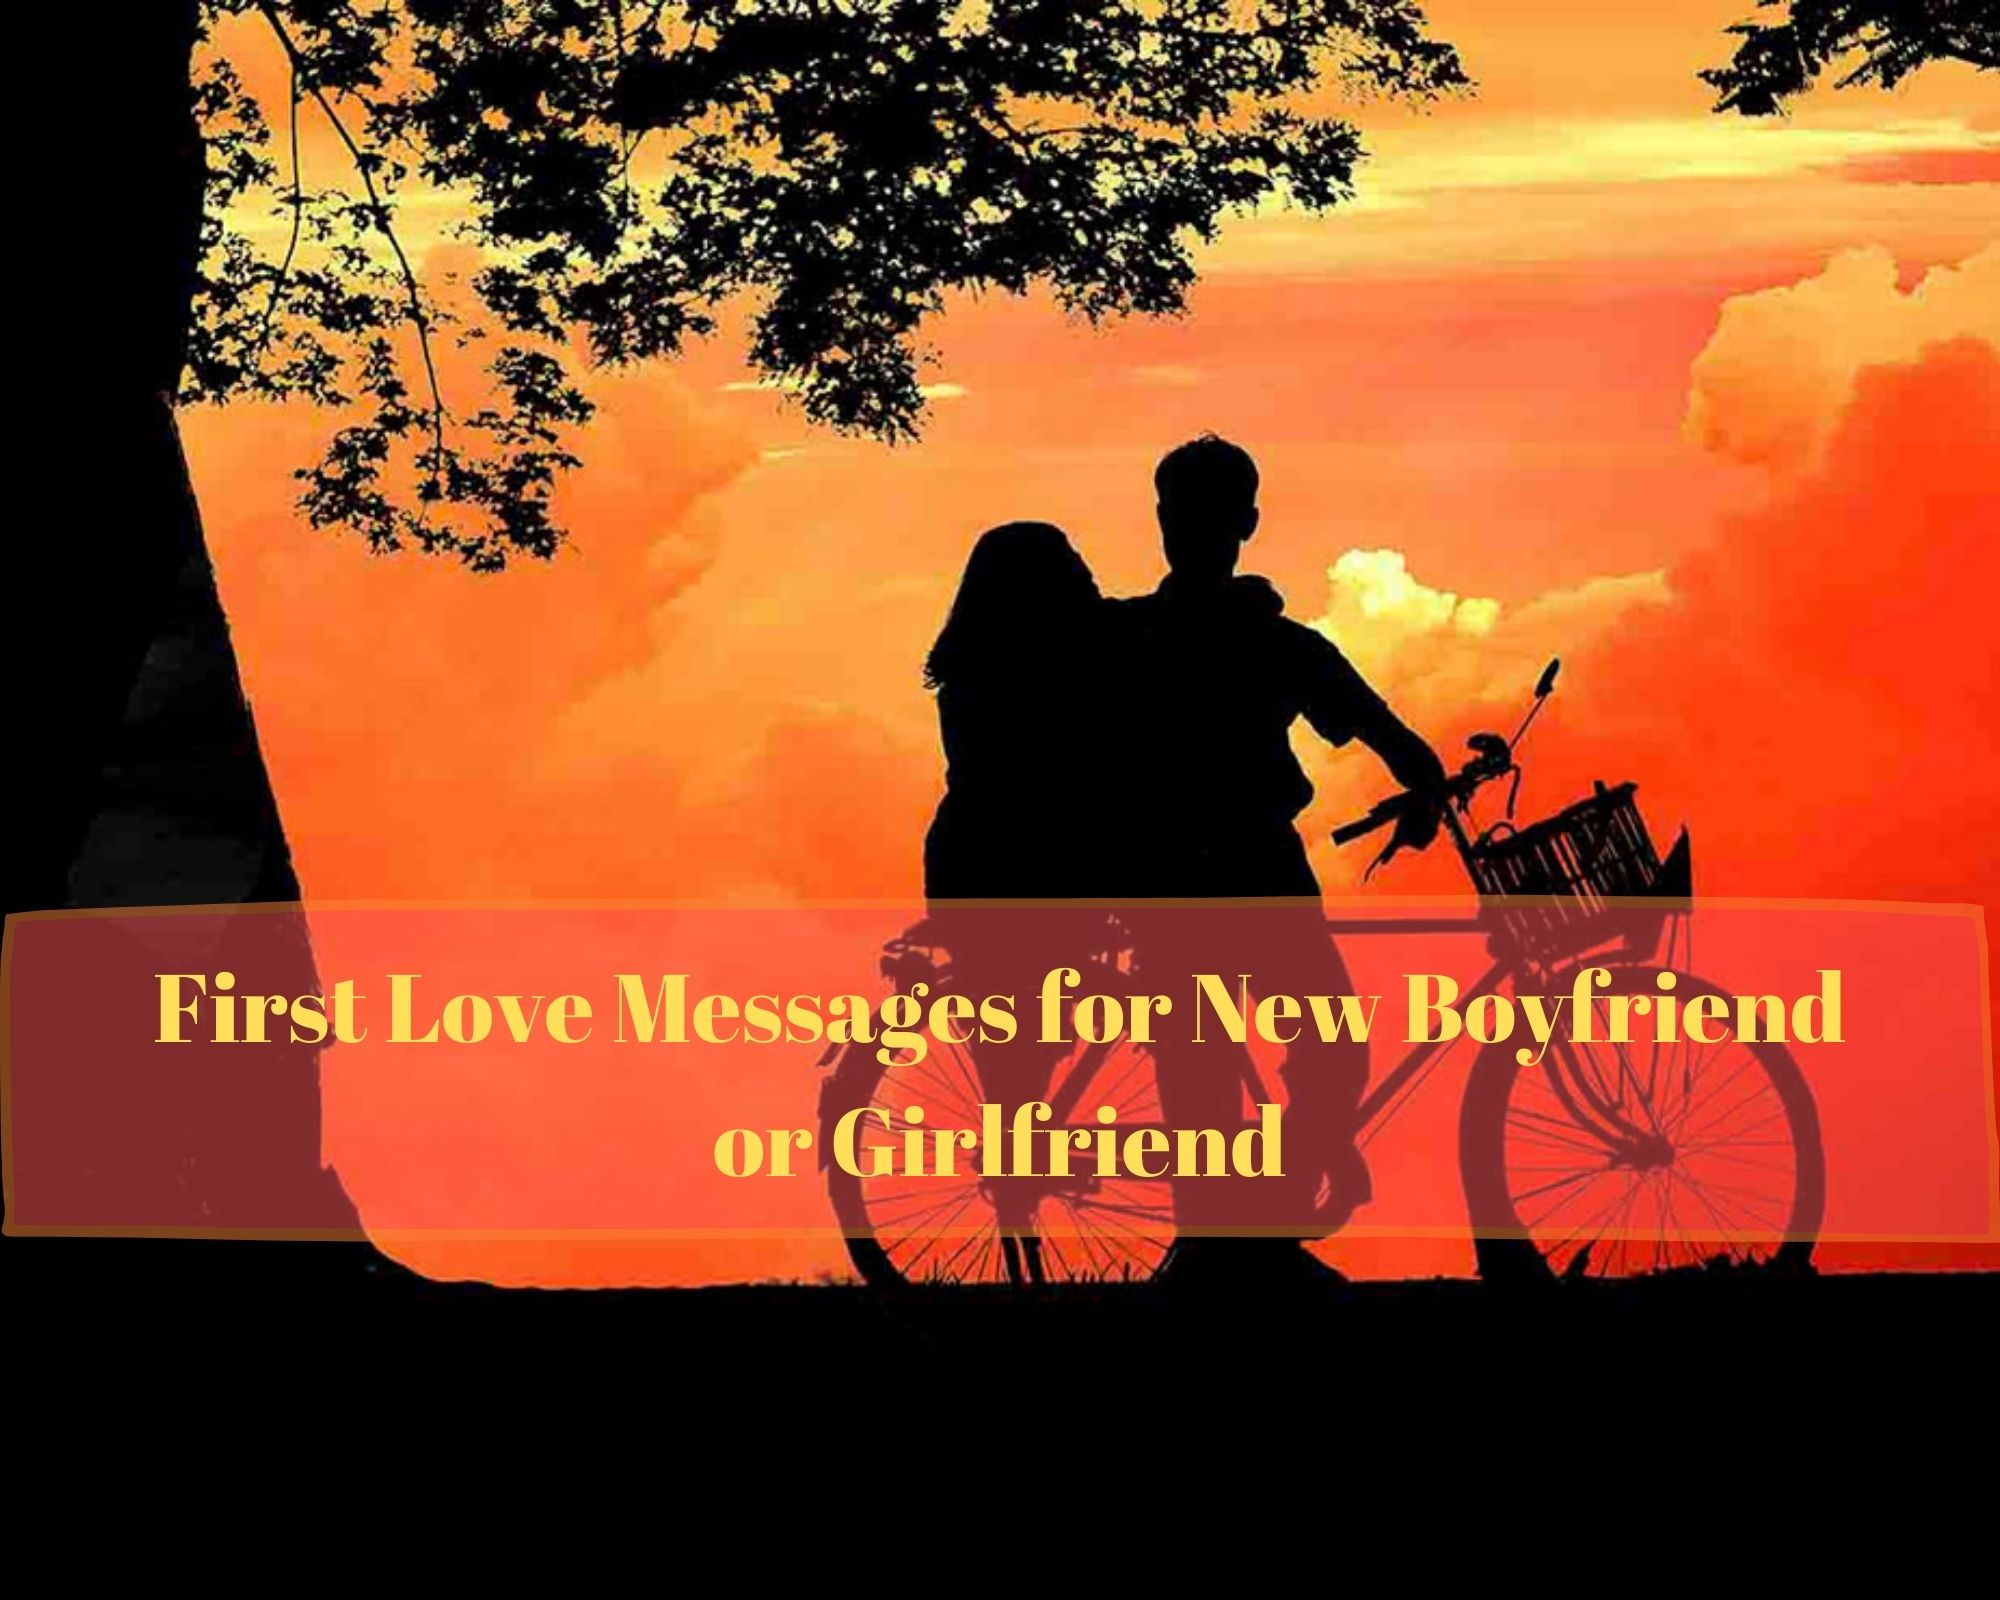 First Love Messages for New Boyfriend or Girlfriend